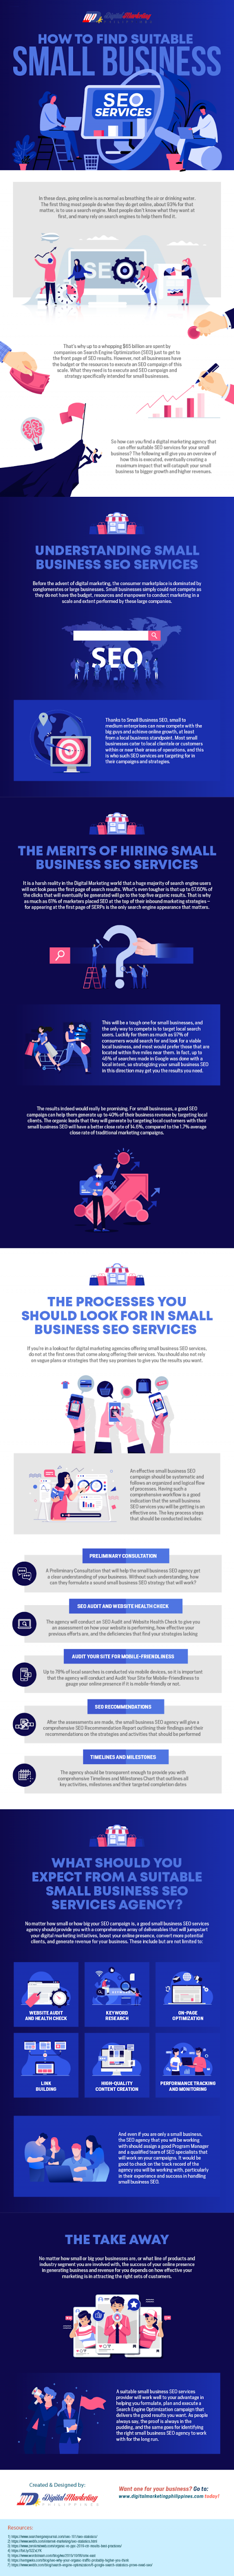 How to Find Suitable Small Business SEO Services #infographic #SEO Services #Small Business #SEO